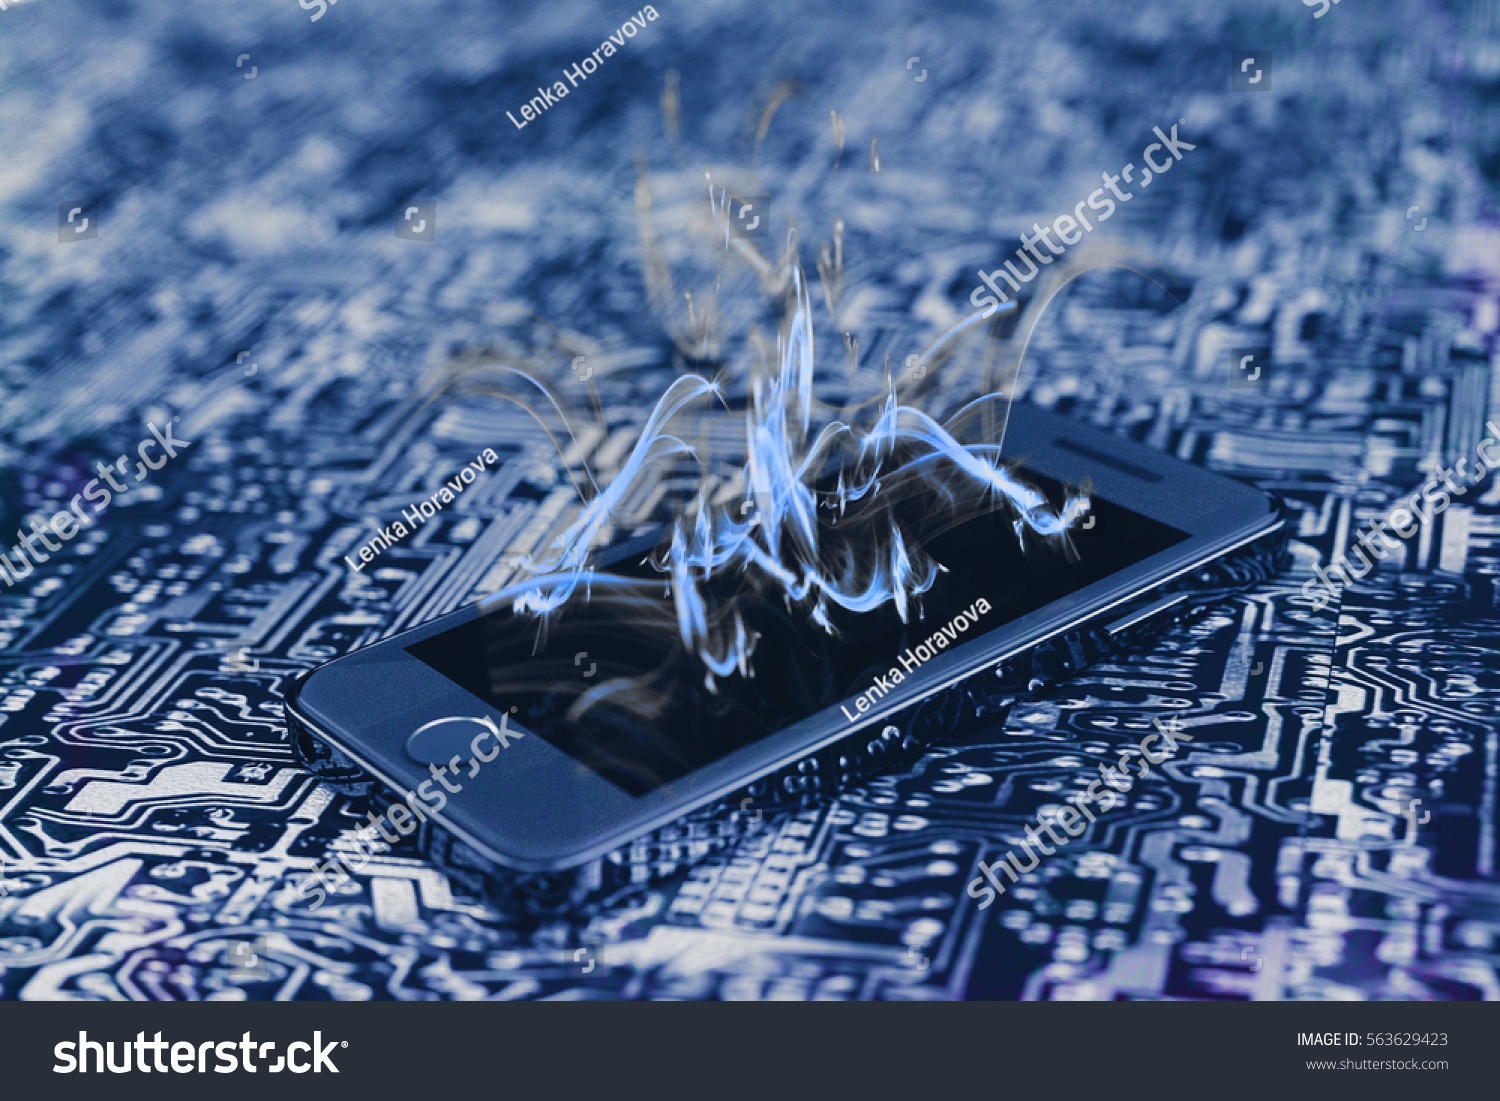 Smartphone On Printed Circuit Board Blue Stock Illustration Of A Cell Phone Royalty Free Image With Flames Coming Out The Screen 3d